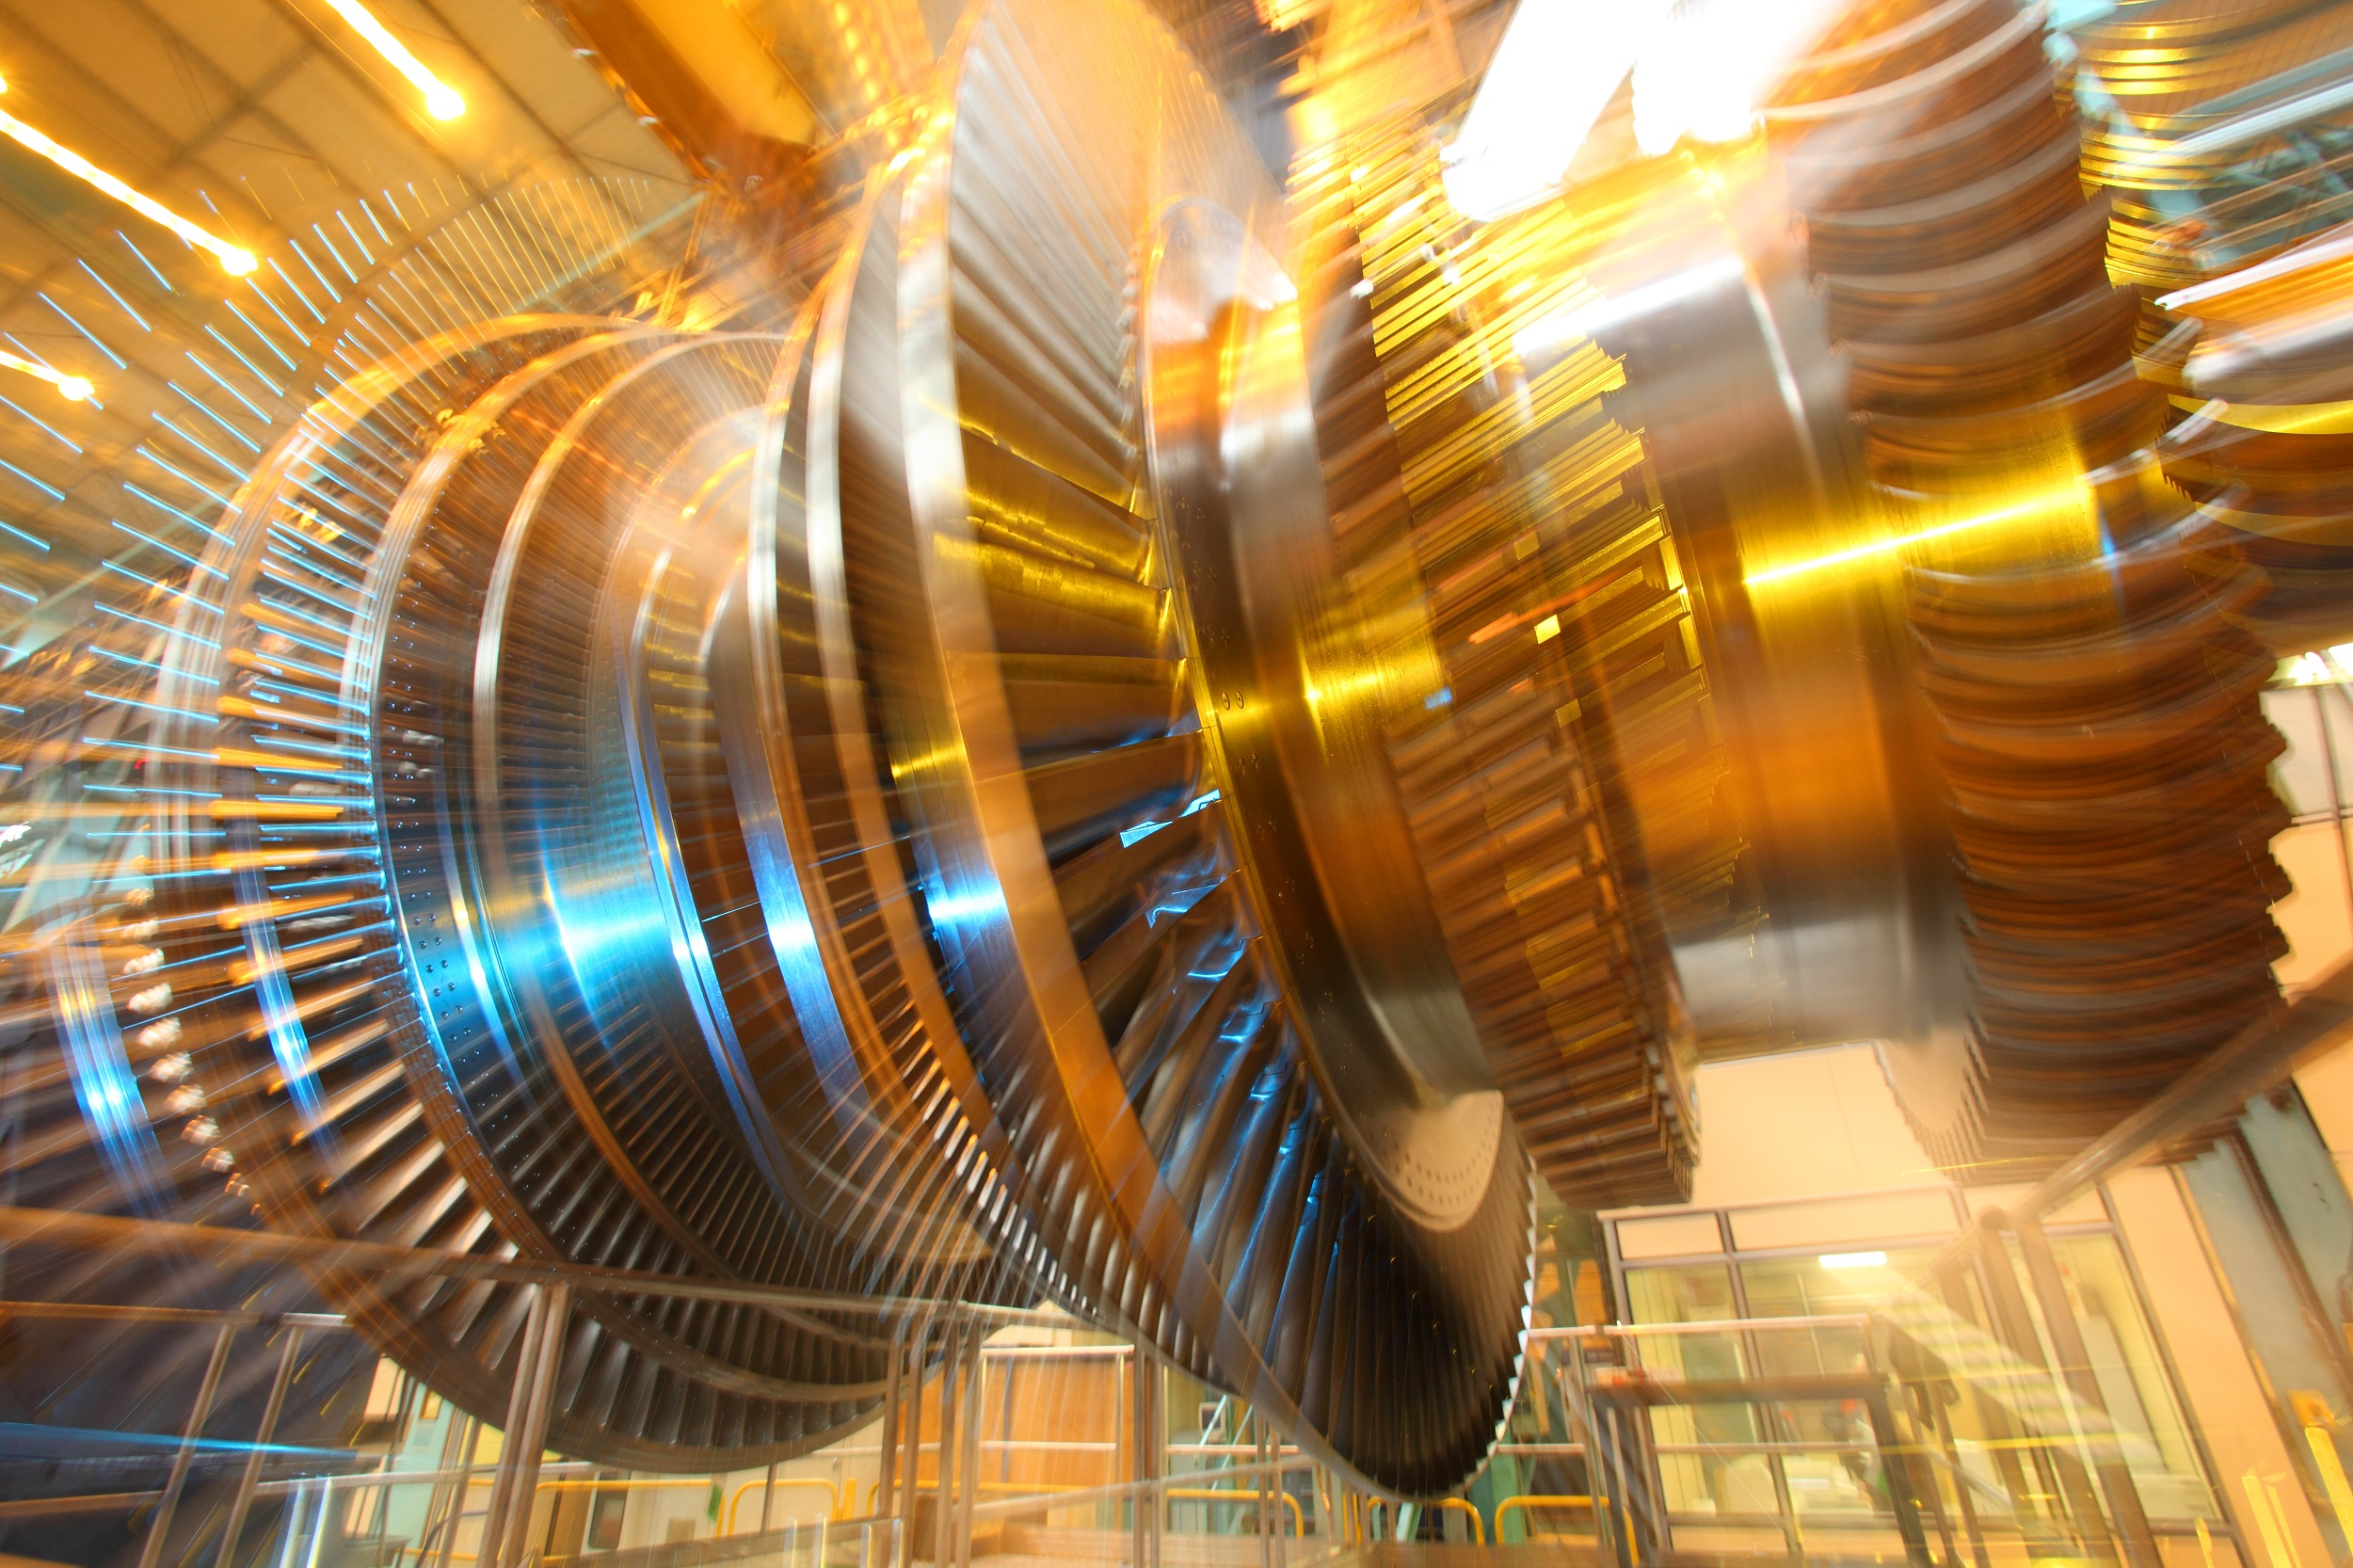 GE Power to supply 4 nuclear turbine islands for Egypt's first nuclear plant